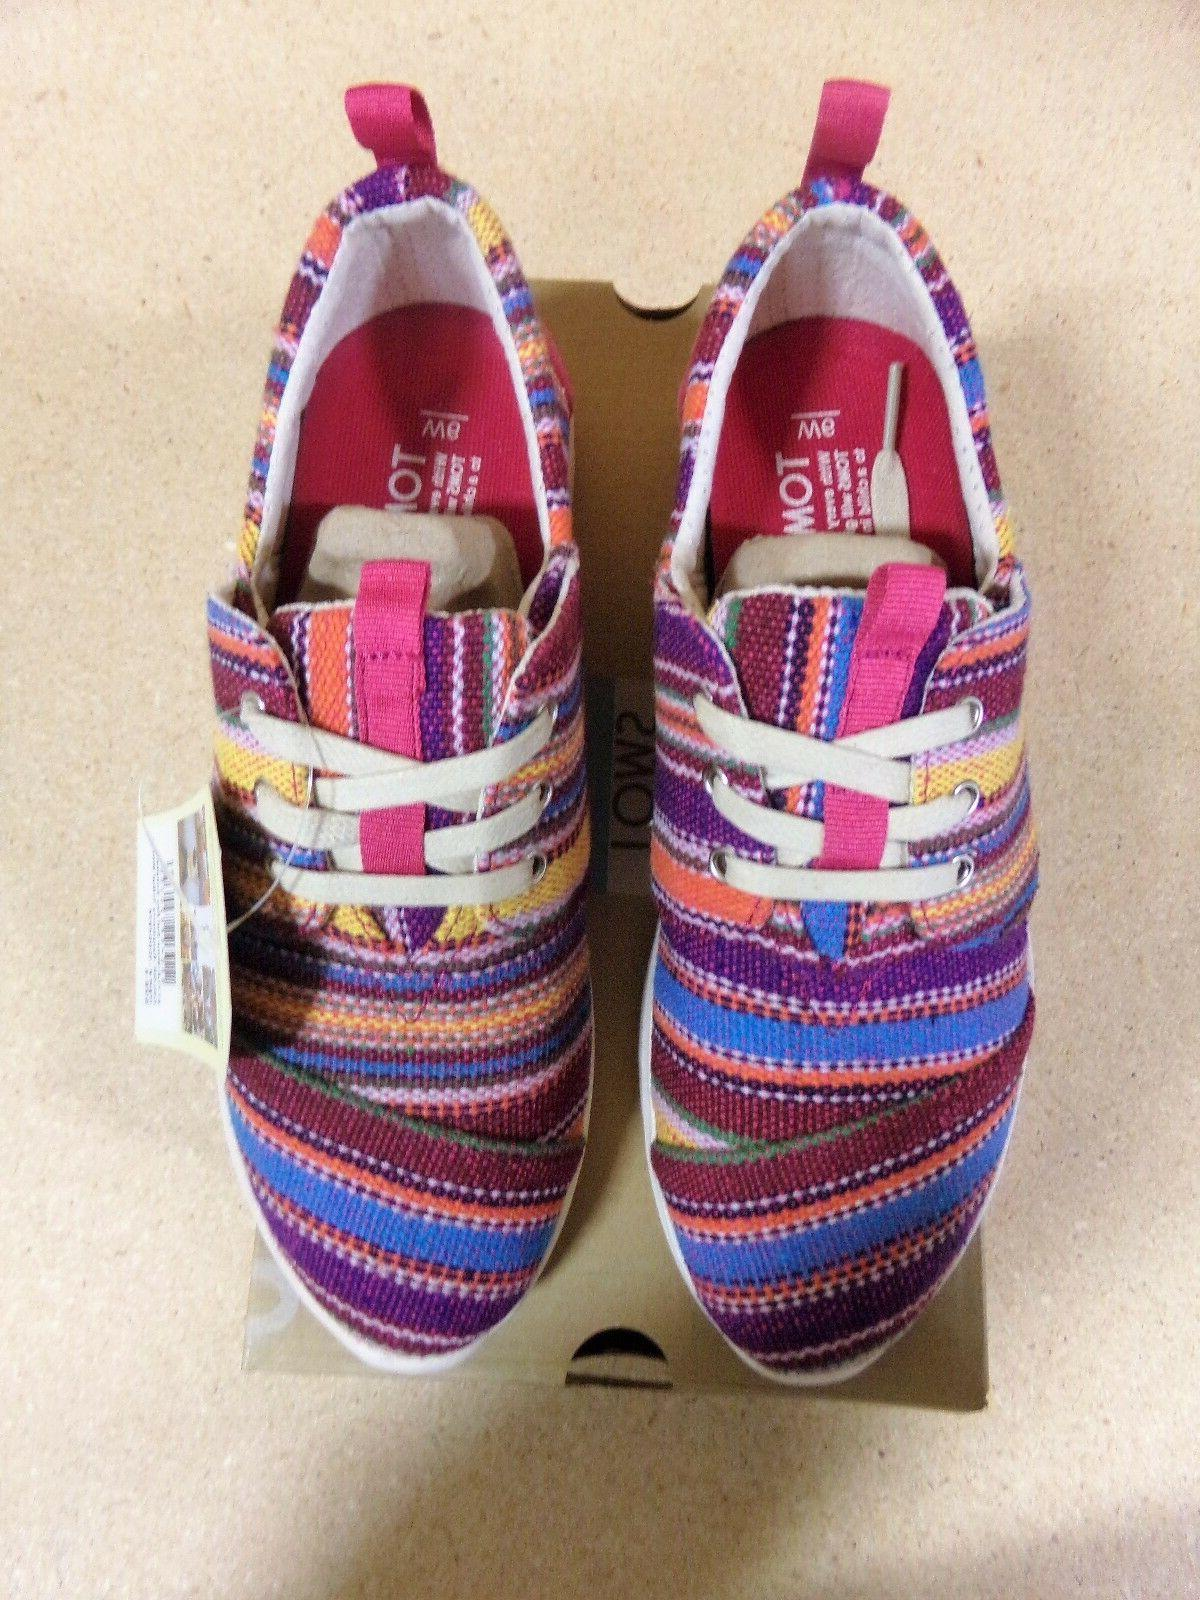 Toms Womens Raspberry Tribal Woven Sneakers Size 5,6,6.5,7,7.5